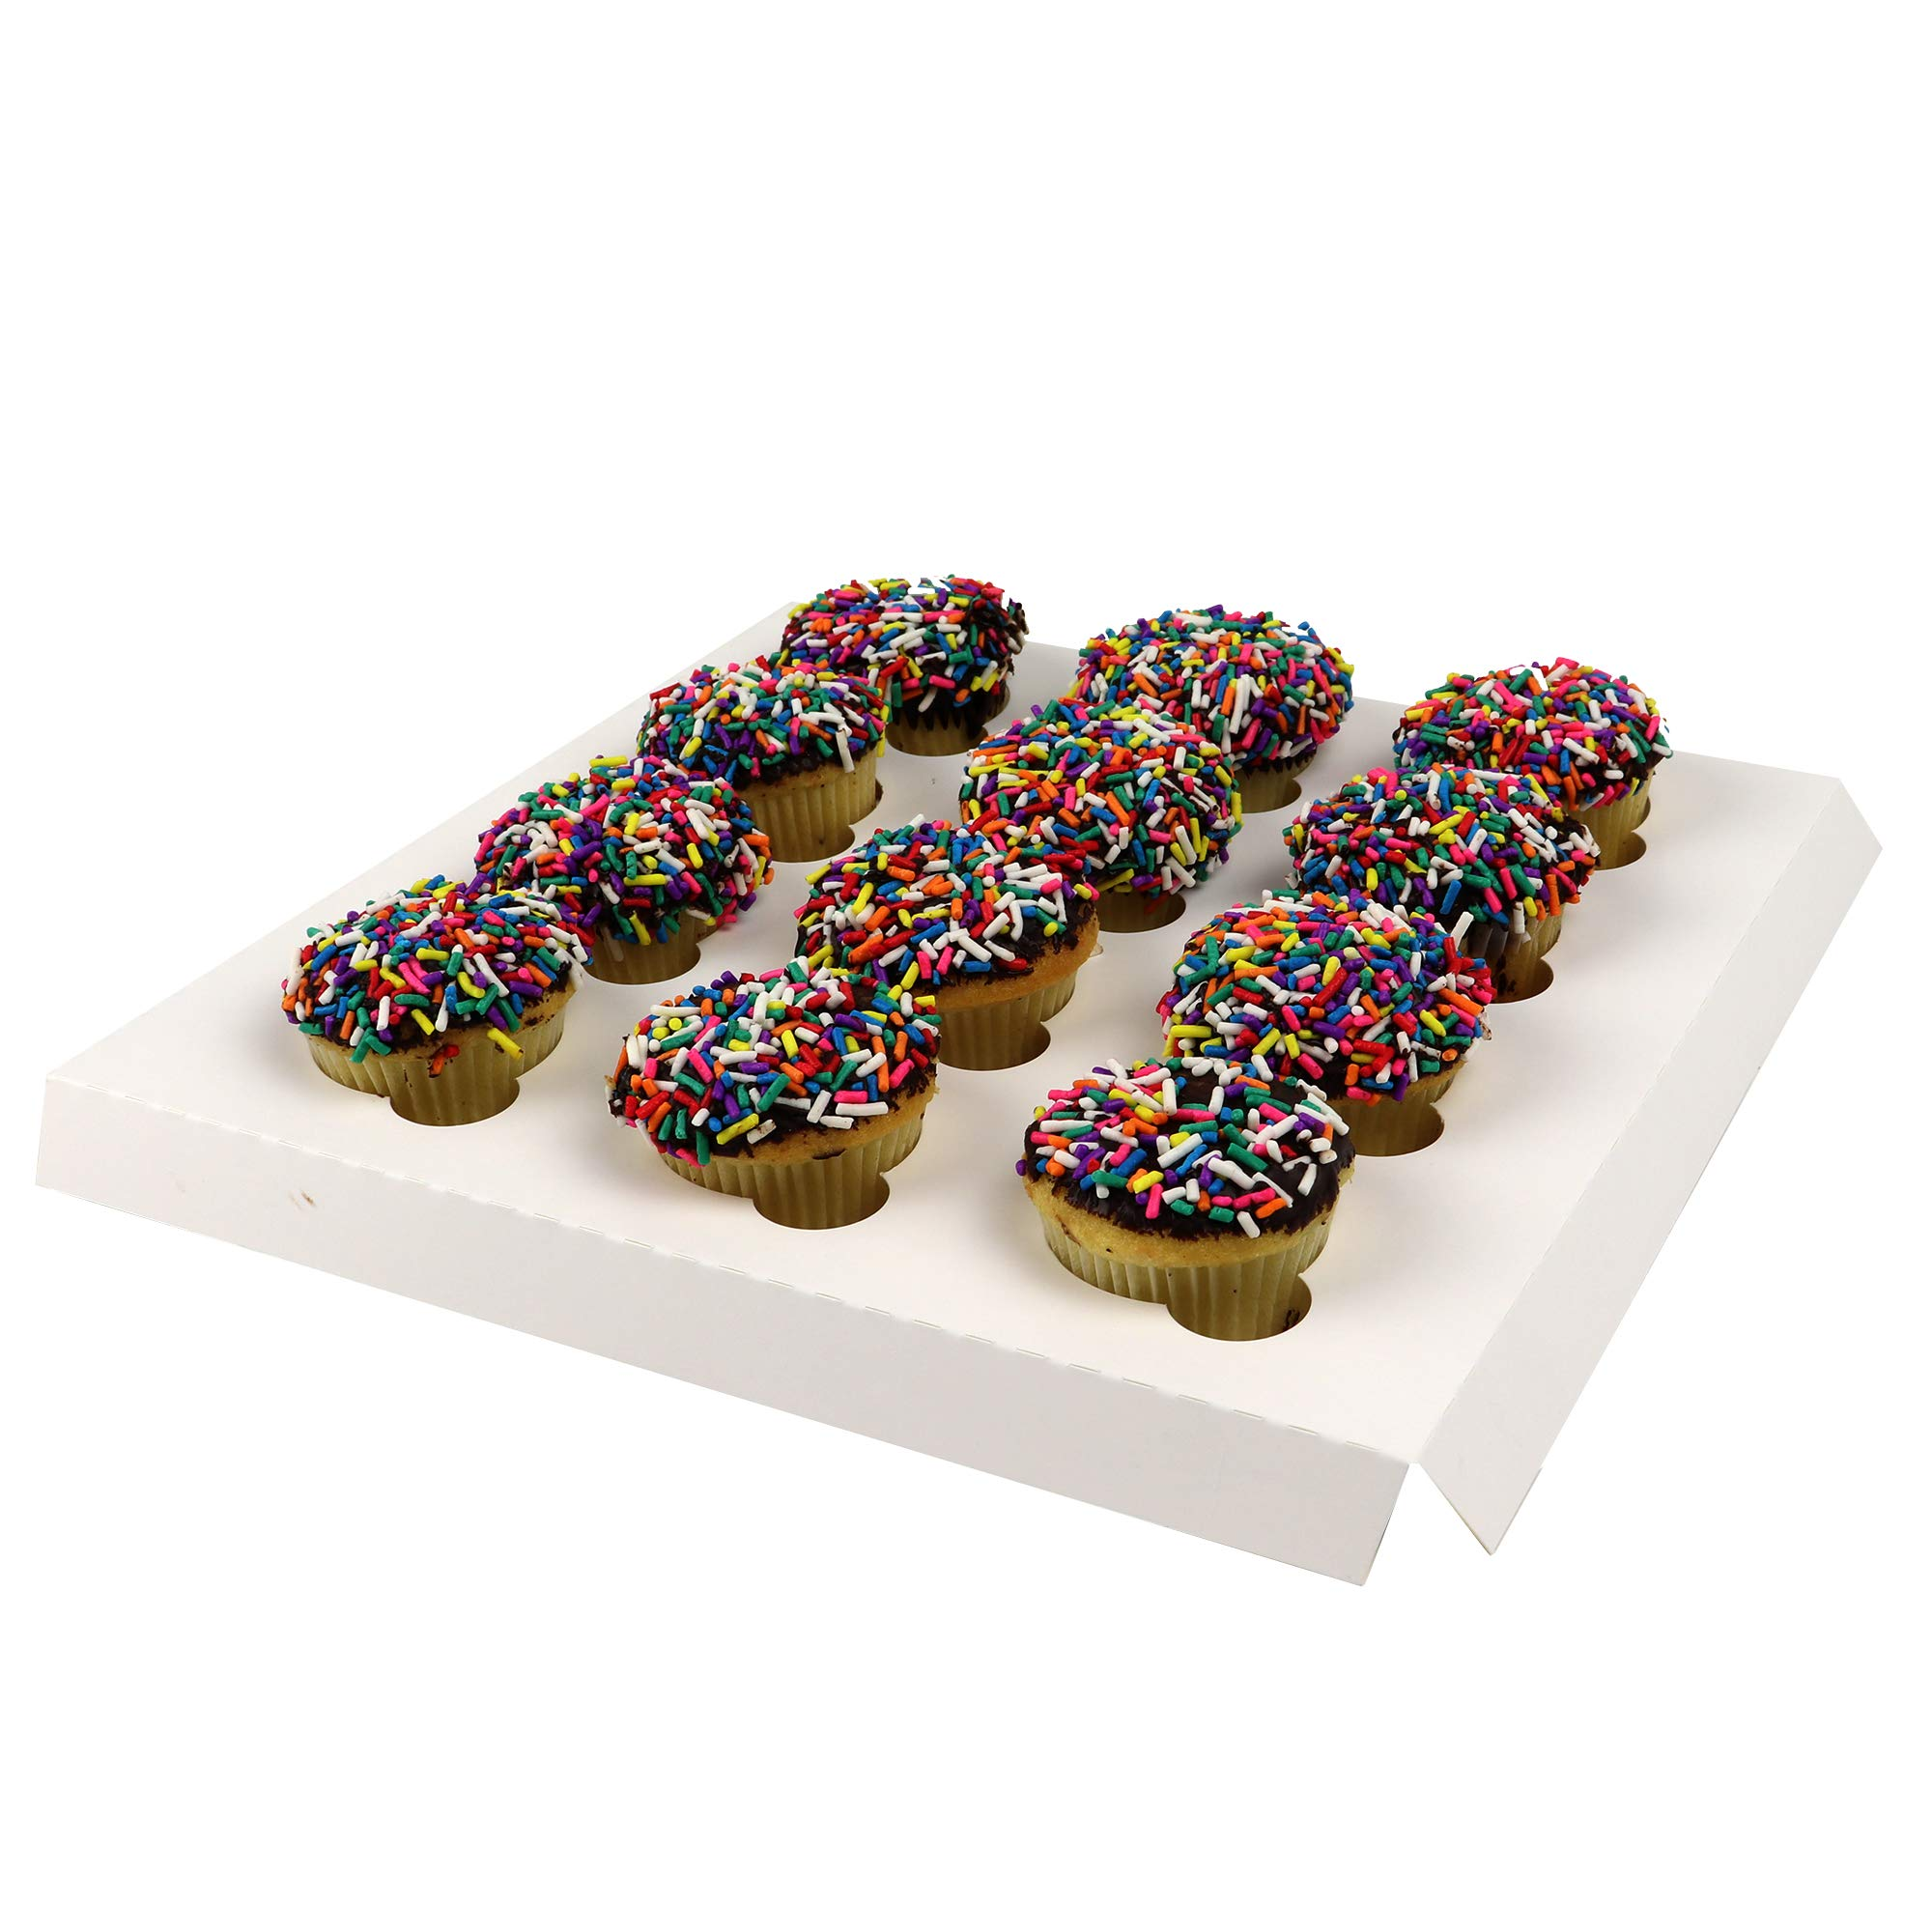 O'Creme Insert Only with White Top and Bottom for Holding 12 Mini Cupcakes in a 10 Inch x 10 Inch Cake Box - Pack of 200